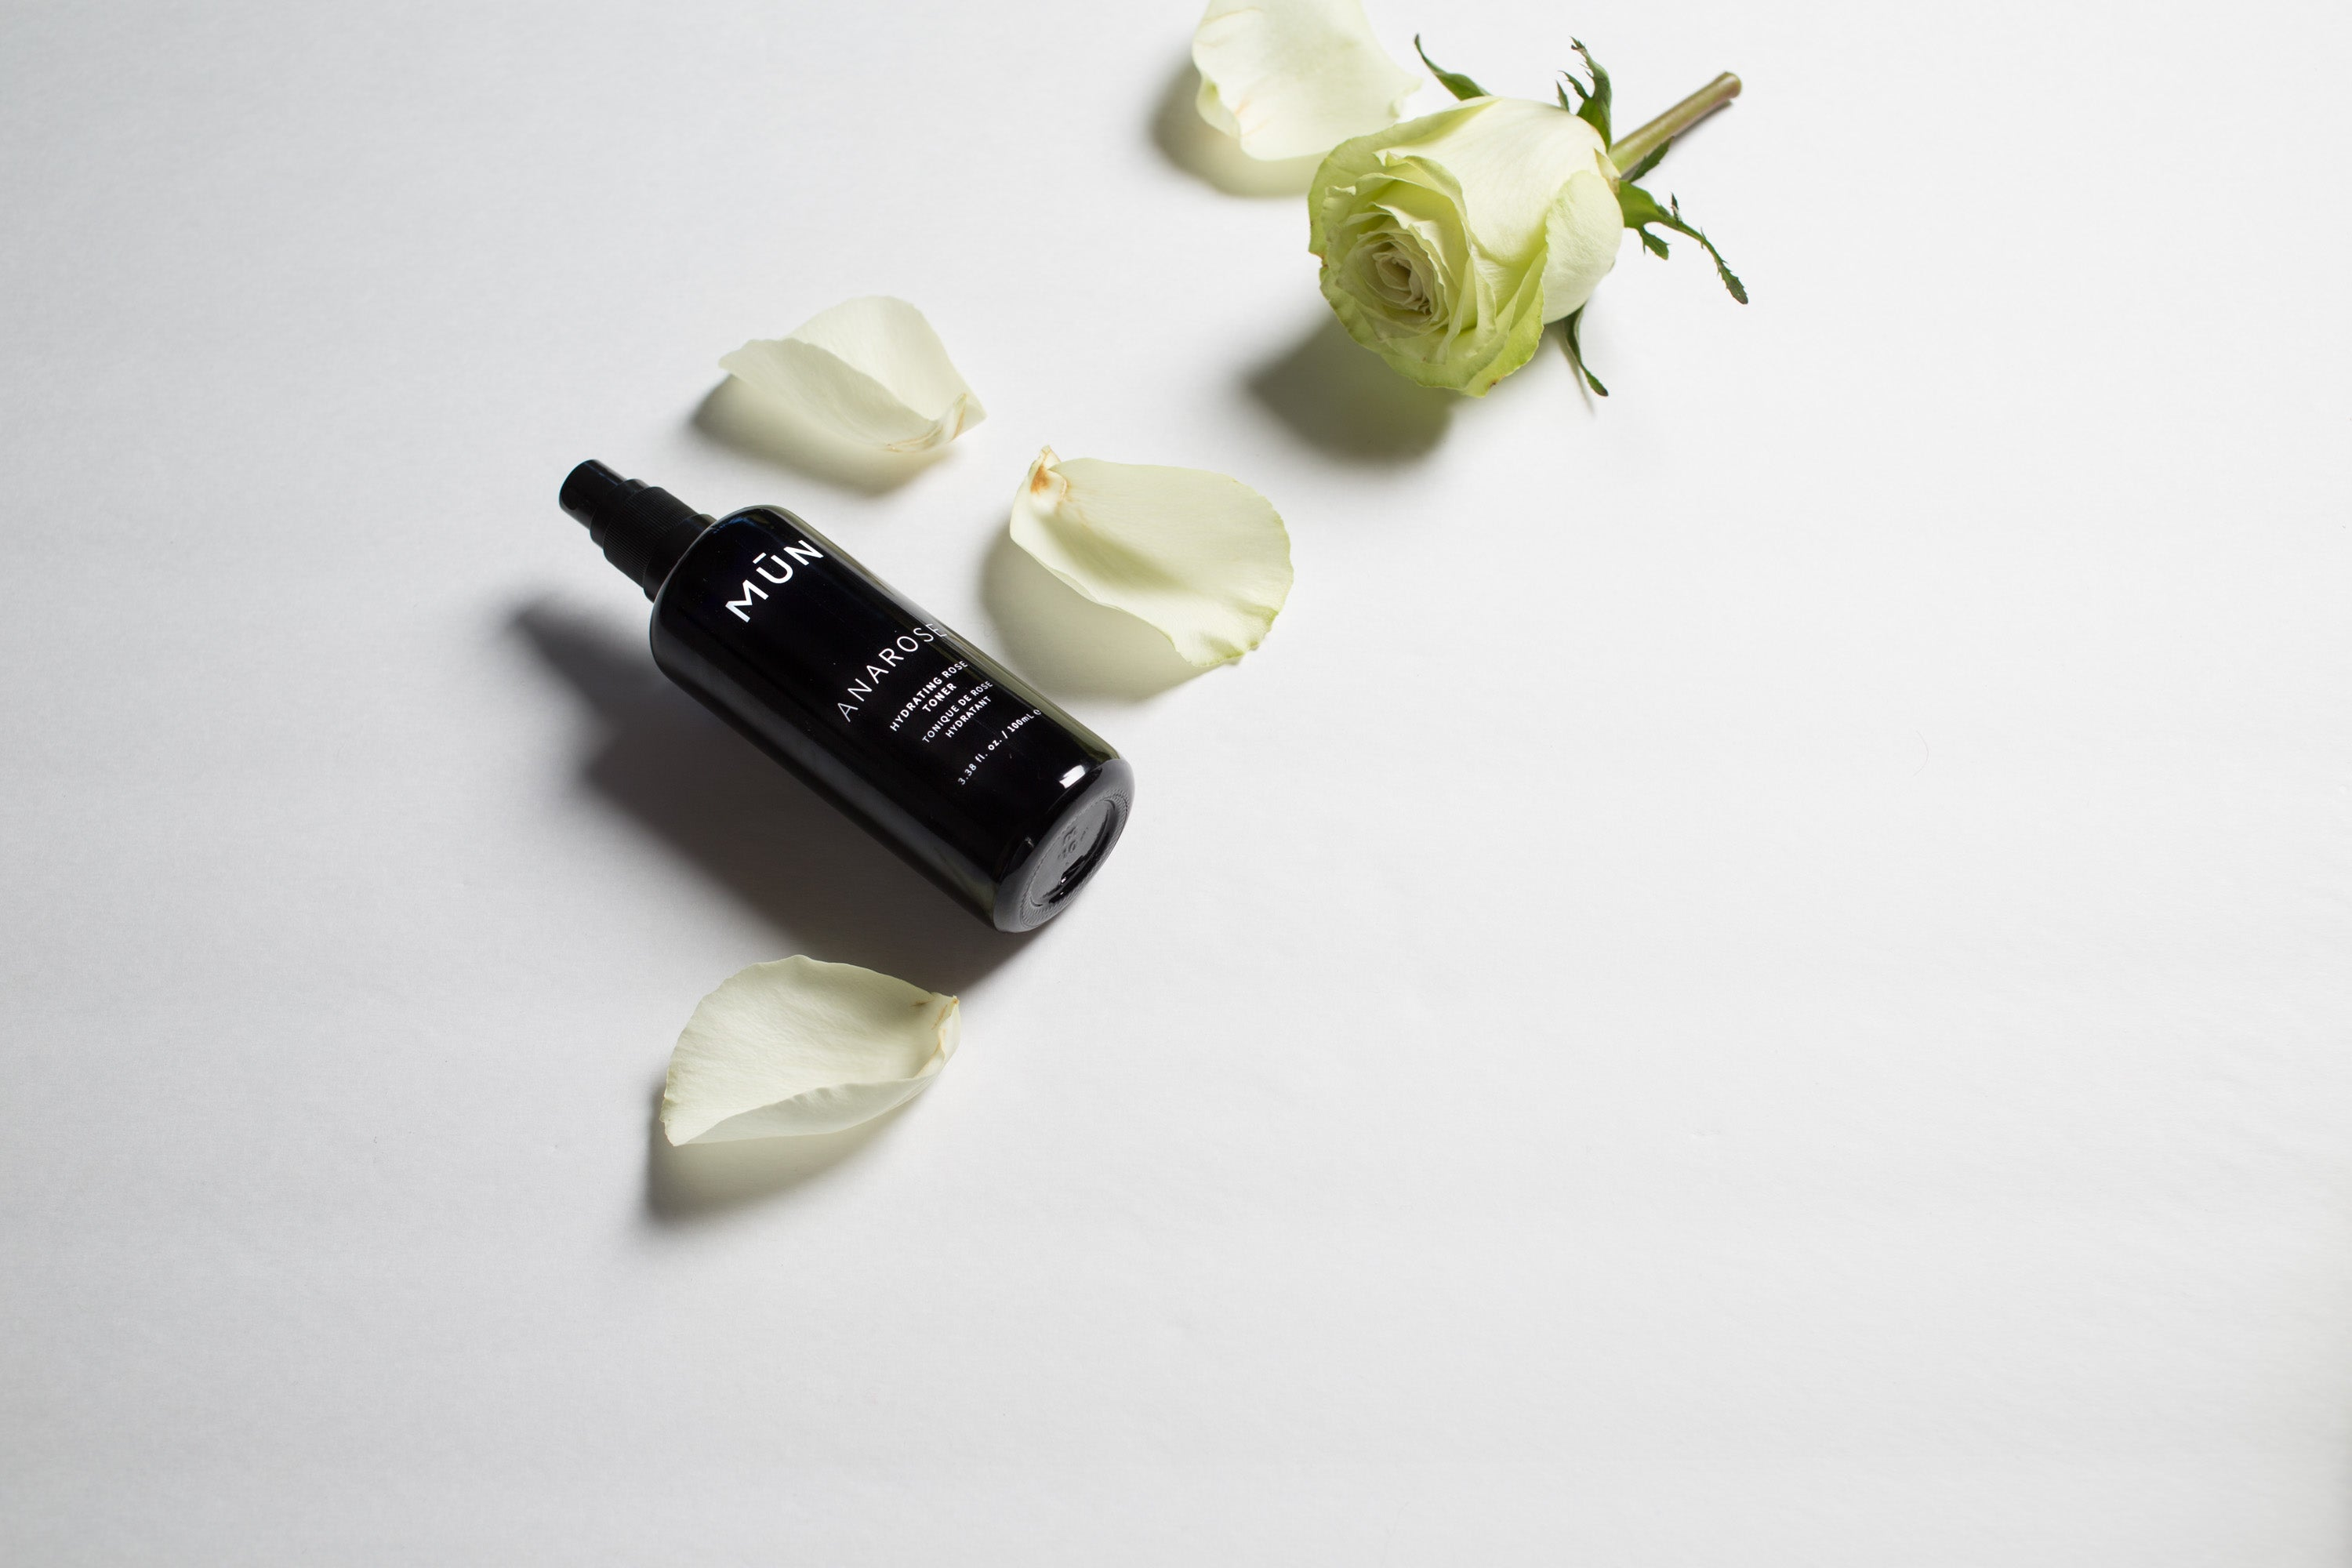 Anarose Hydrating Rose Toner